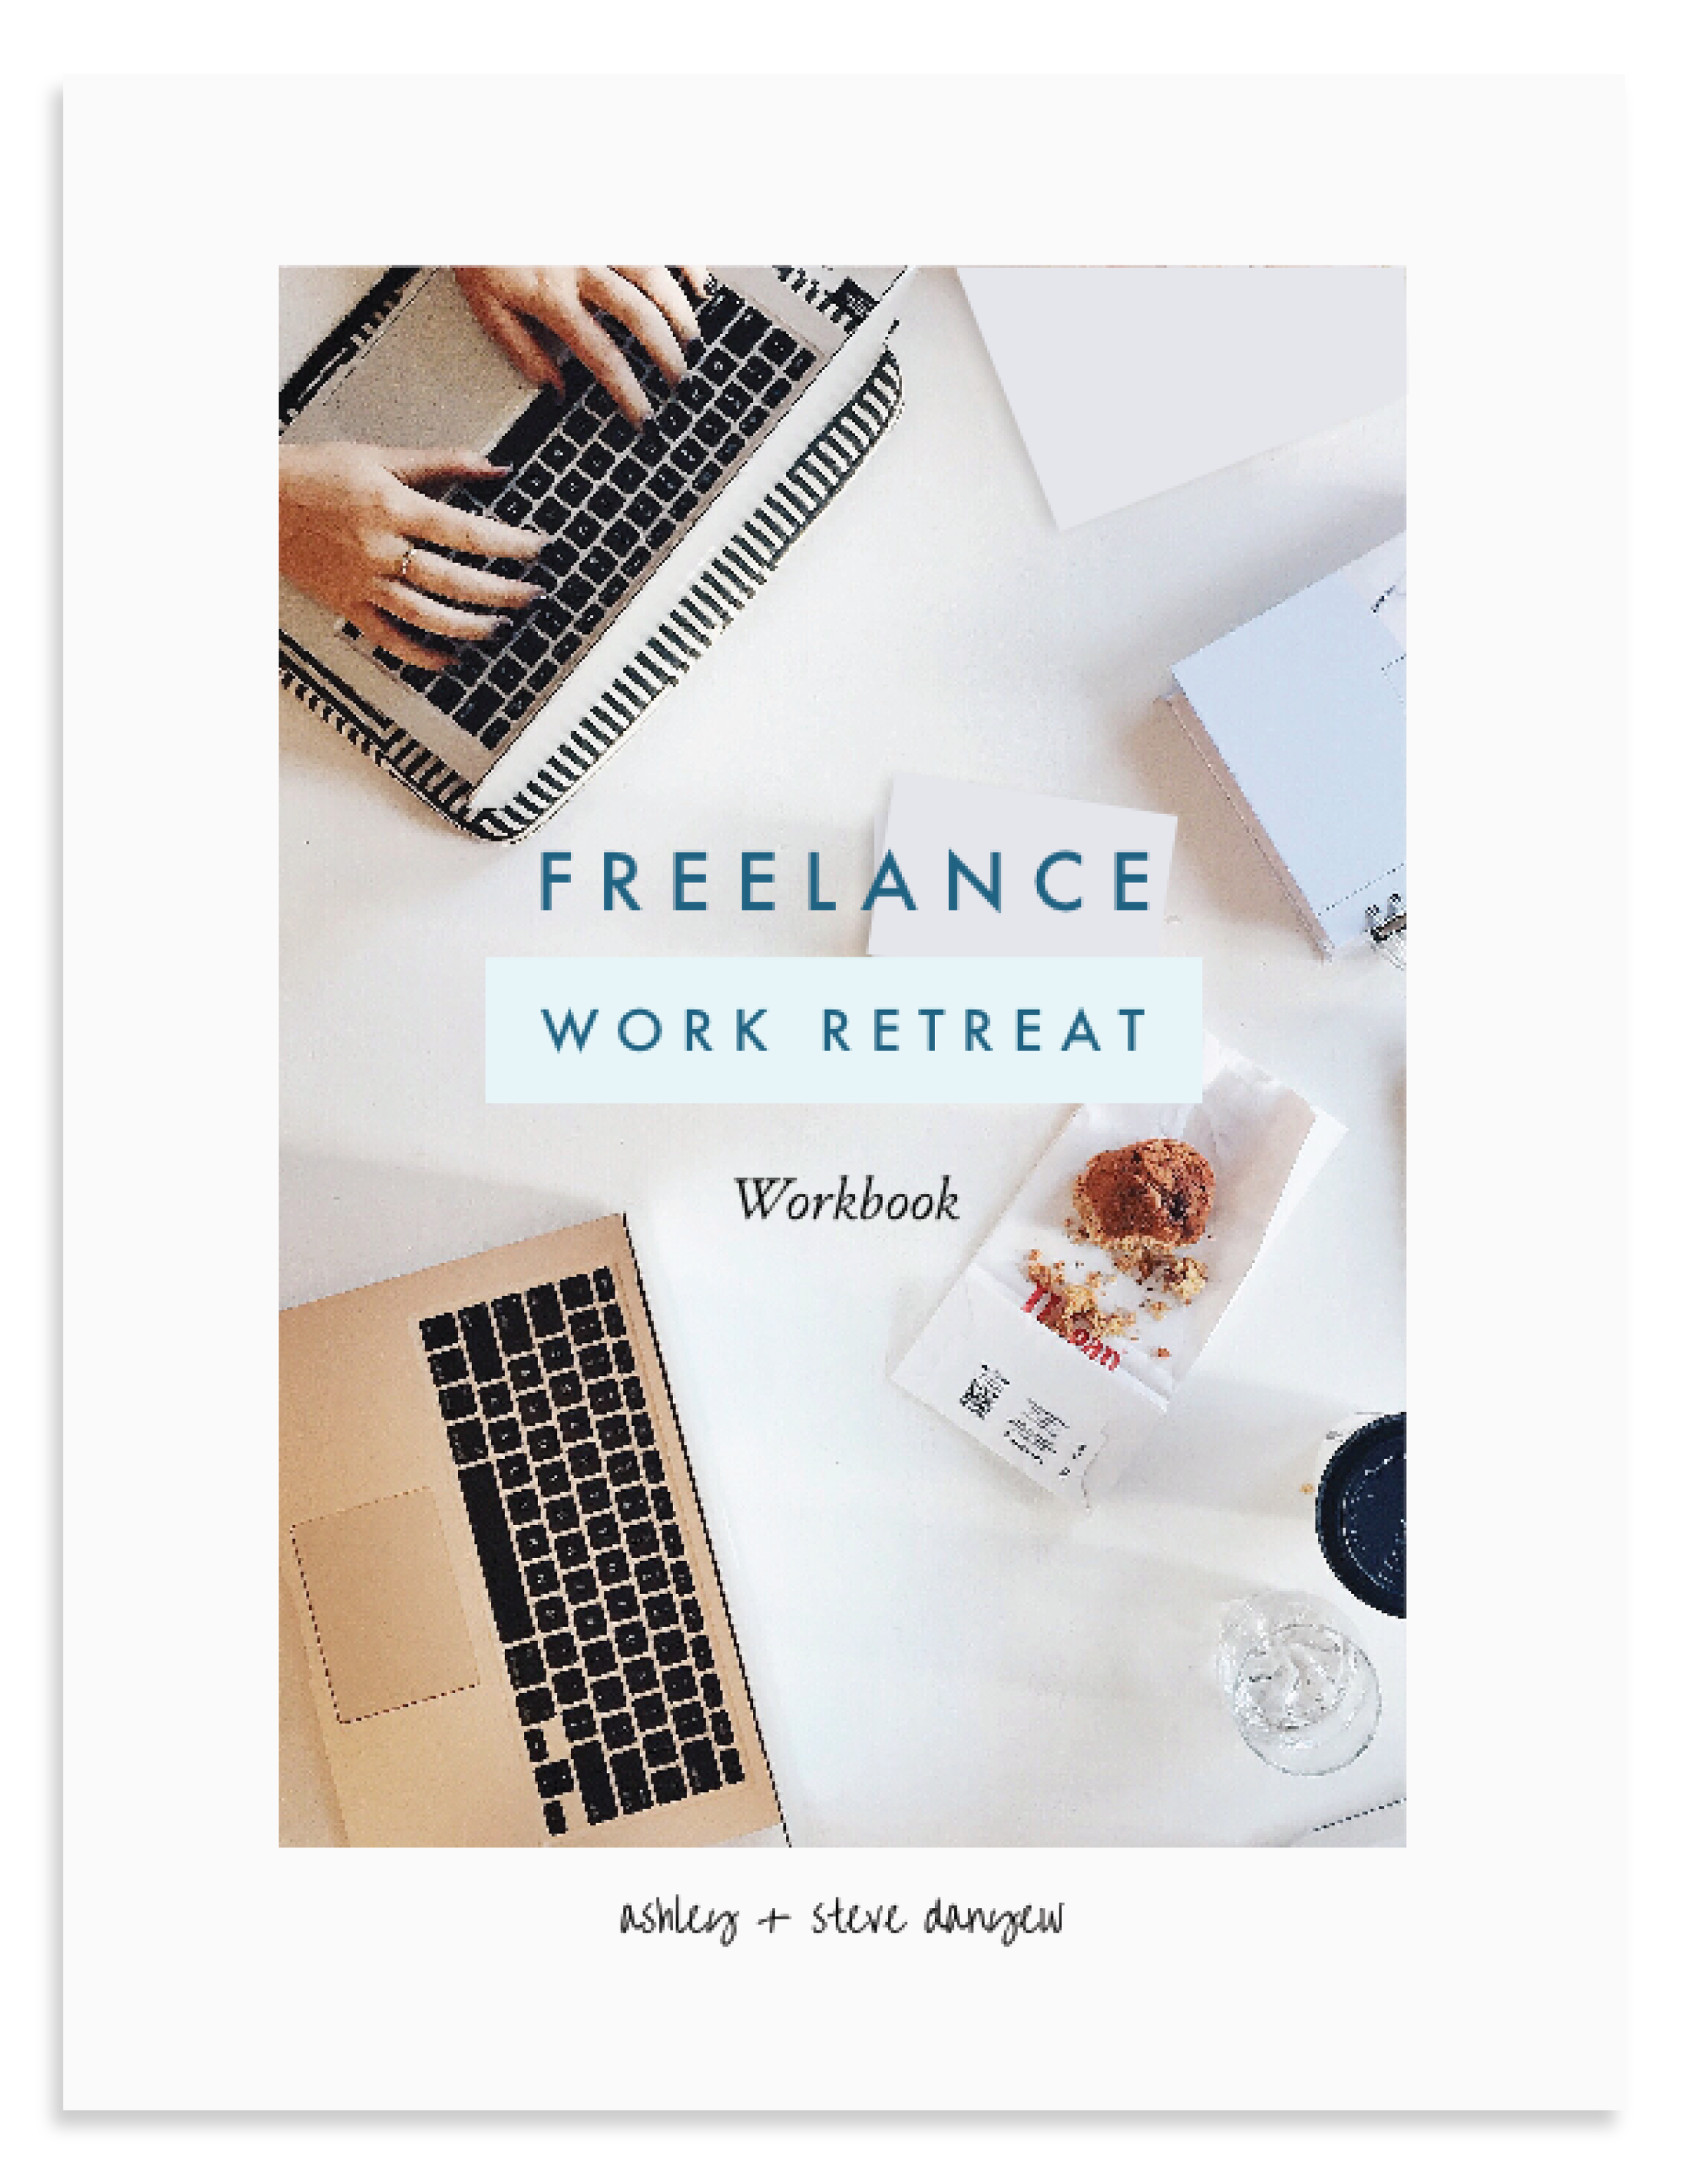 Freelance Work Retreat Workbook - Ashley and Steve Danyew.png